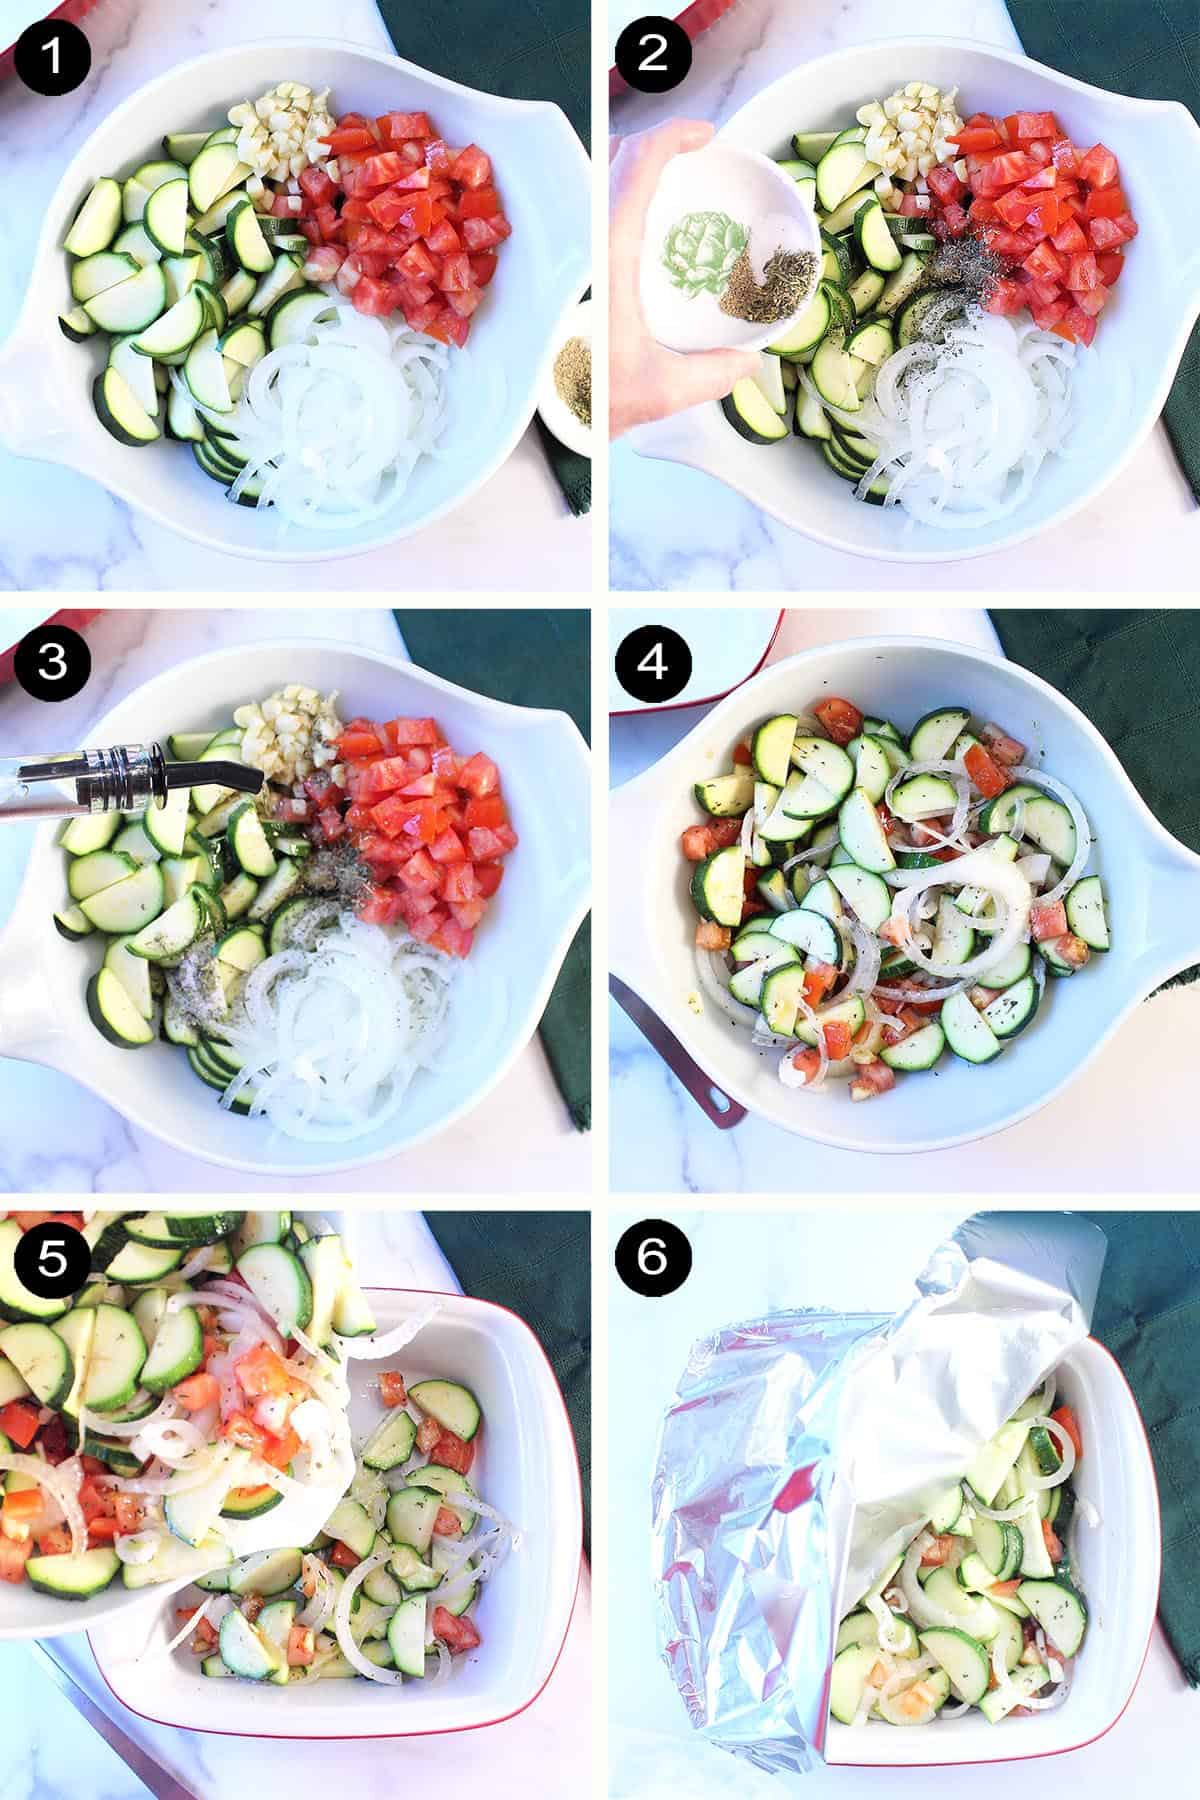 Showing easy prep steps 1-6 for zucchini casserole.